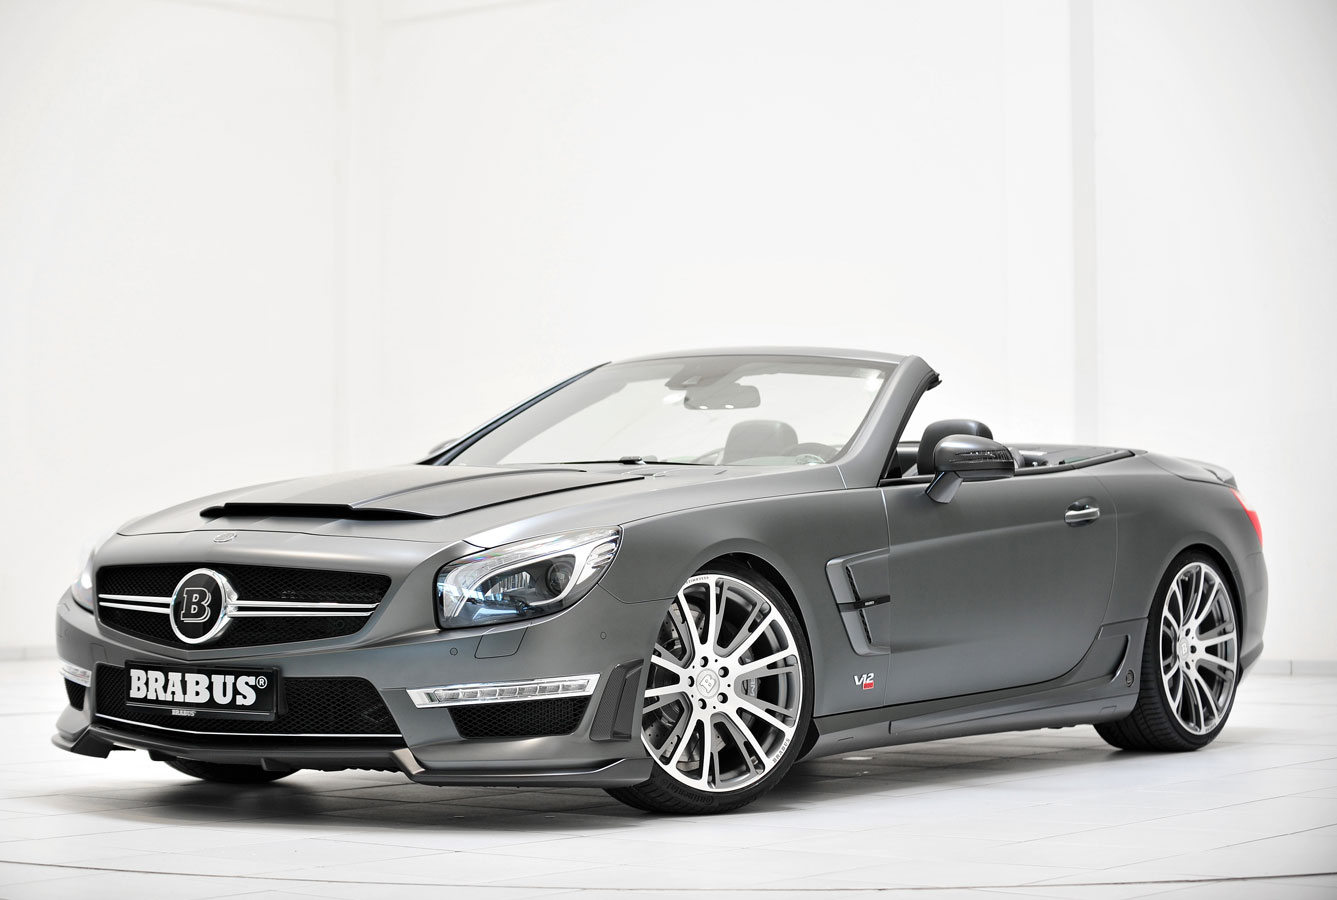 High-tech tuner BRABUS chooses Continental UHP tyres